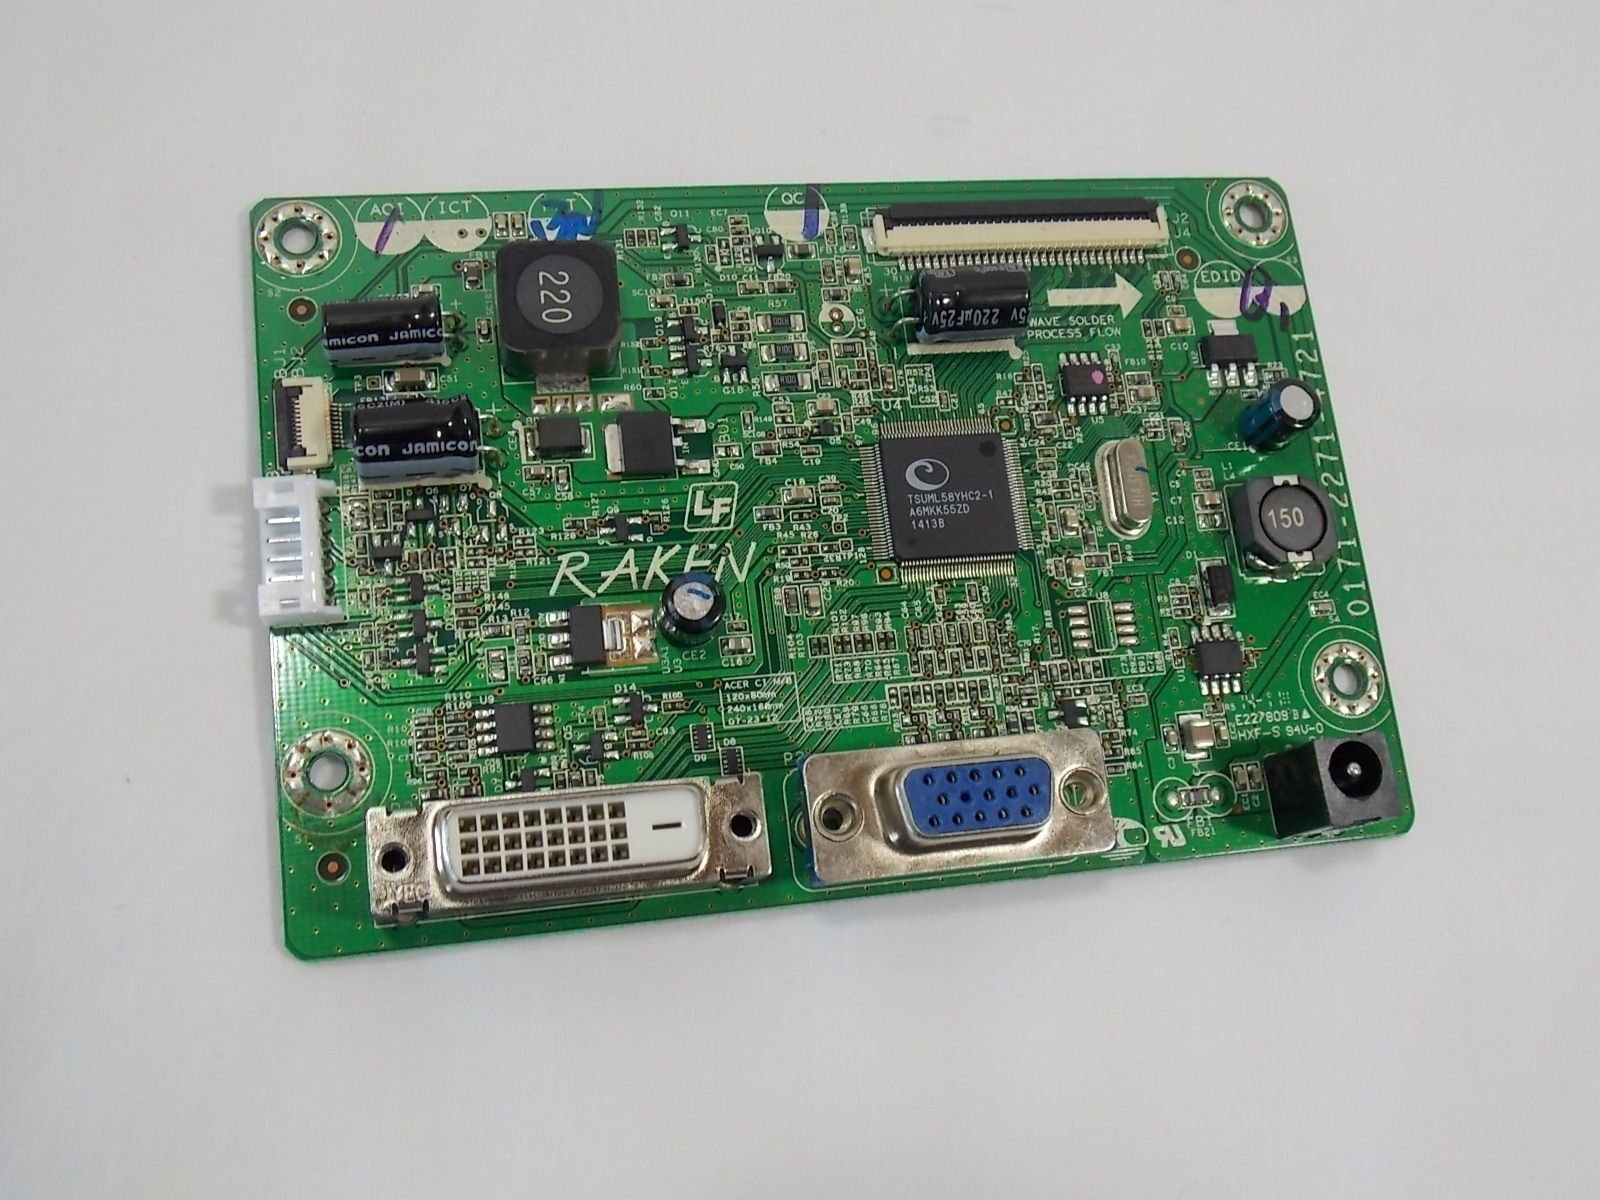 ACER S230HL MONITOR MAIN BOARD 0171-2271-4721 R3523-0172-0150 55